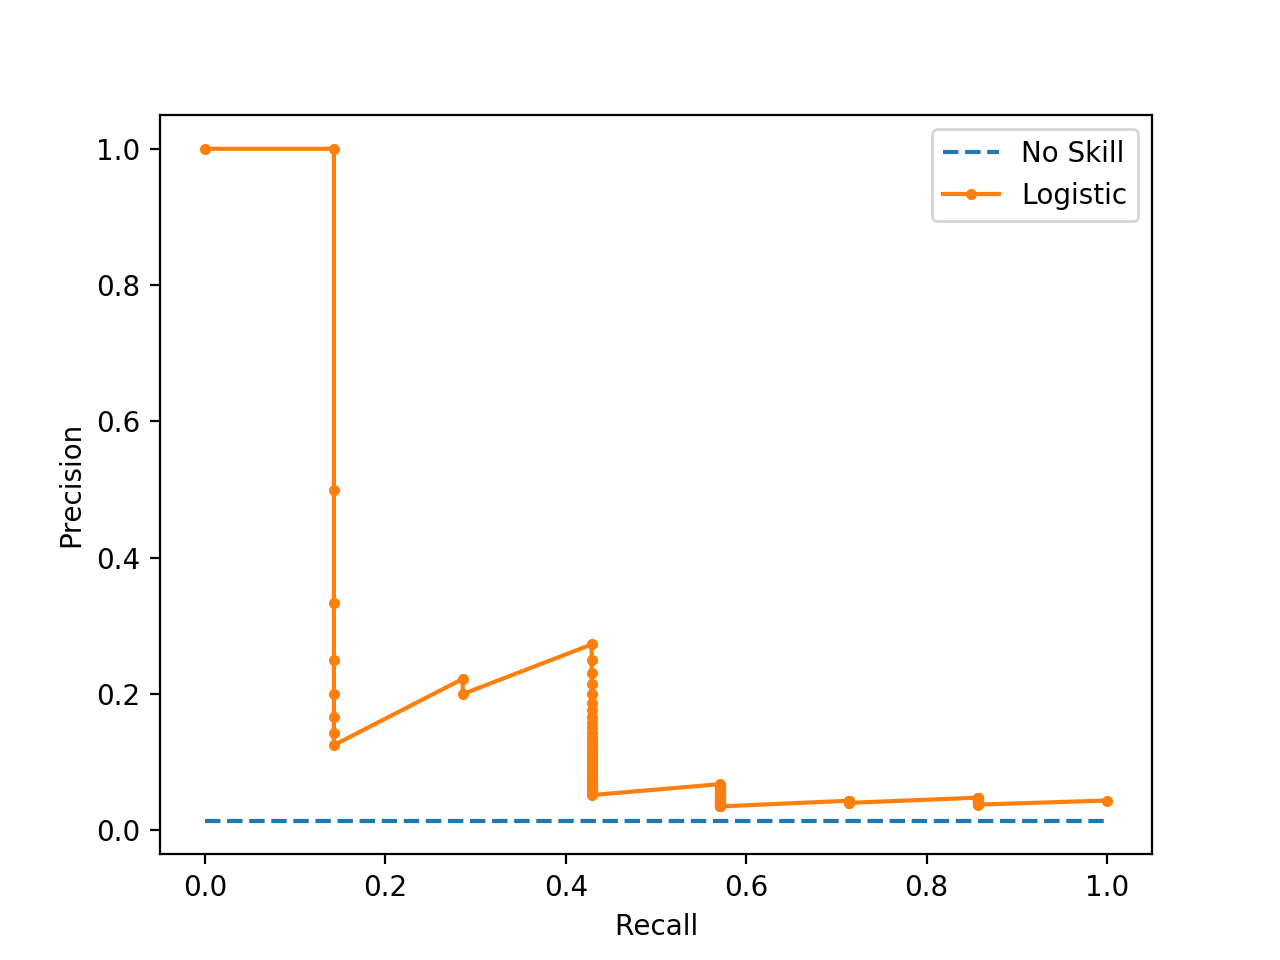 Plot of Precision-Recall Curve for Logistic Regression on Imbalanced Classification Dataset